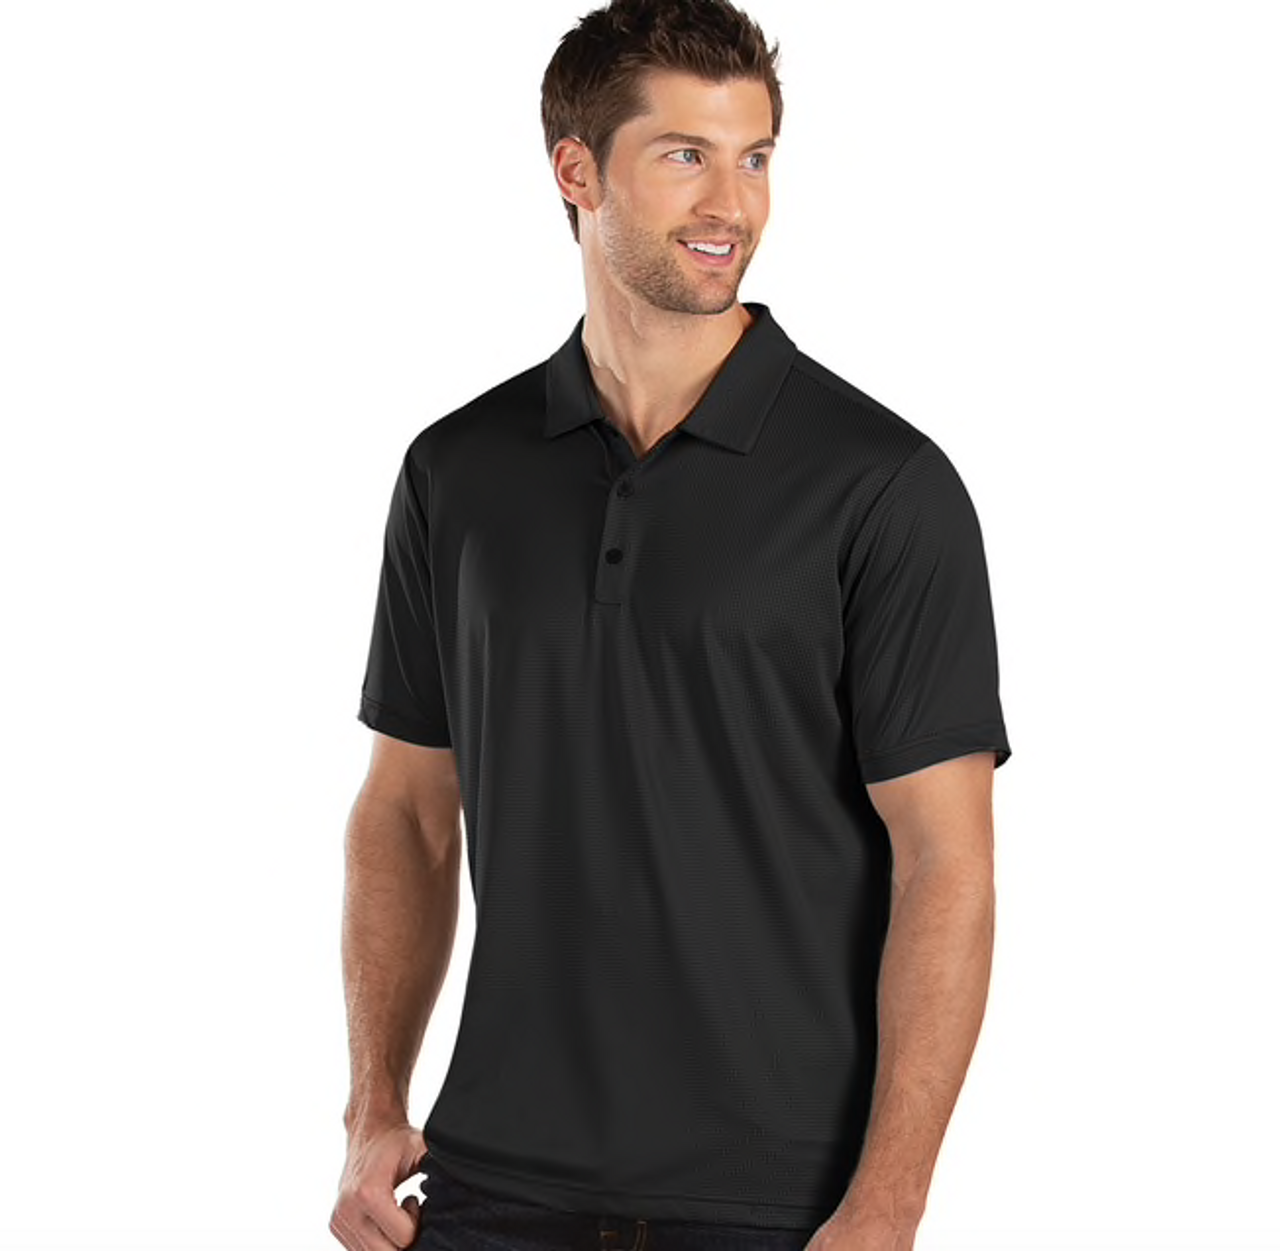 Details about  /Guide Gear Men/'s Black Short Sleeve Polo